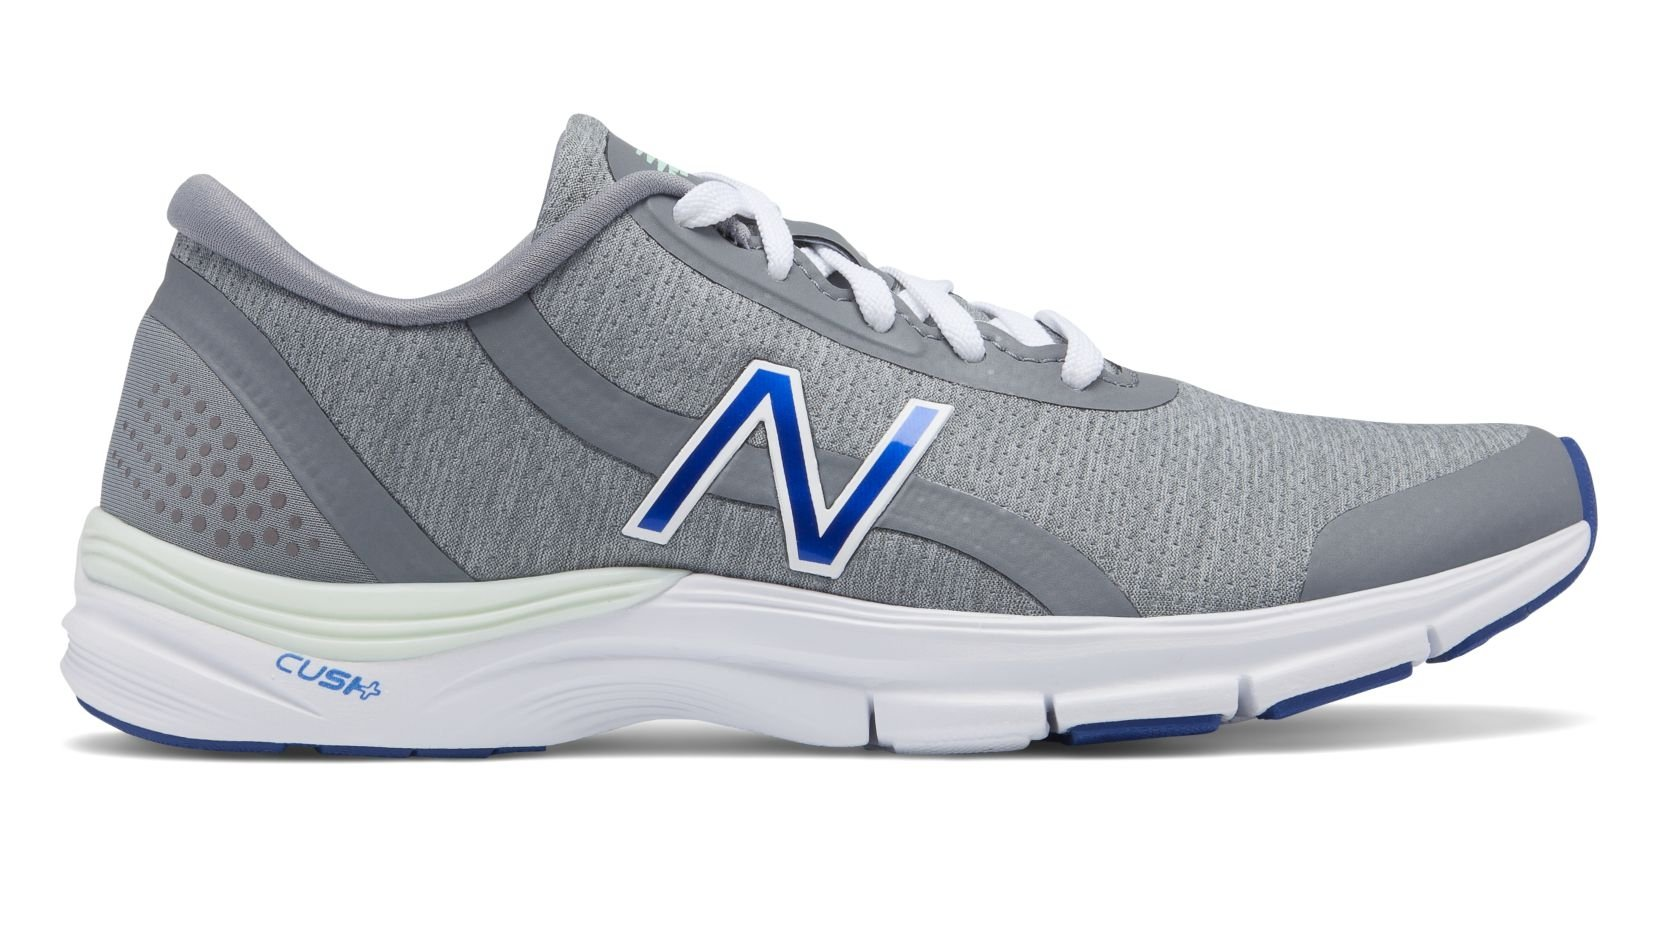 New Balance 711v3 Heathered Trainer Shoe Women's Crosstraining 8.5 Steel-Blue Iris